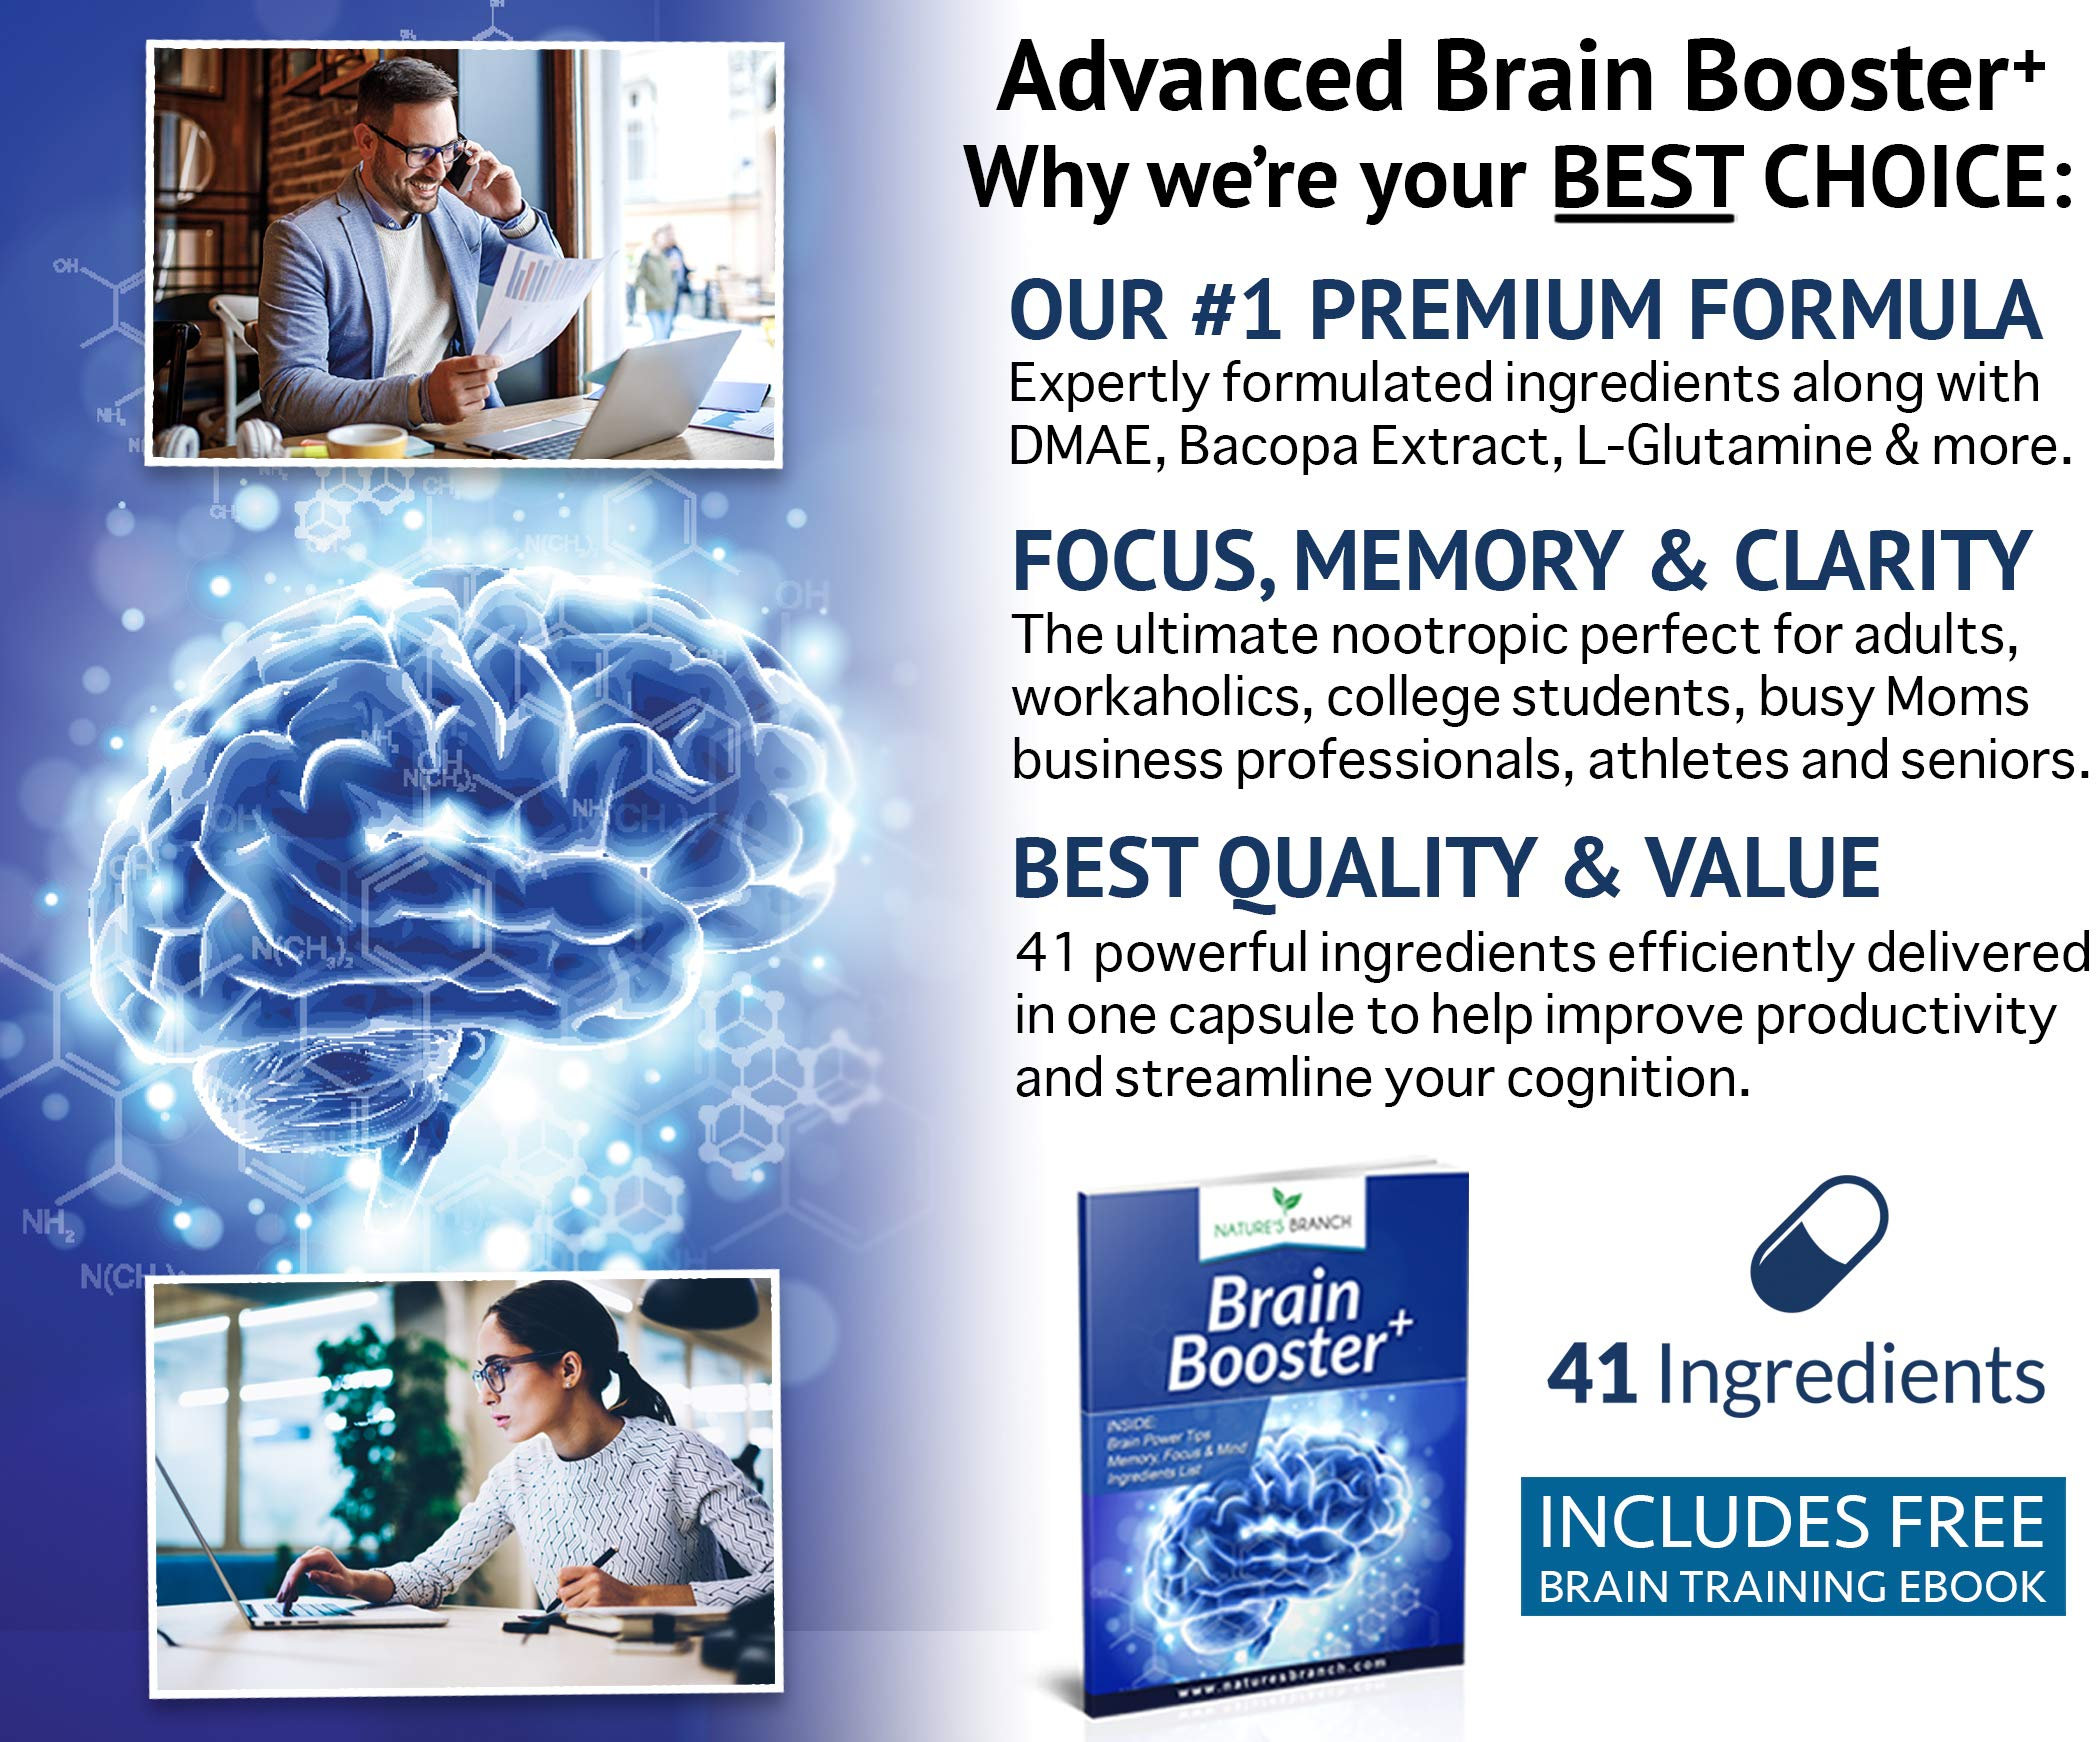 Advanced Brain Booster Supplements - 41 Ingredients Memory Focus & Clarity Vitamins Plus eBook - Boost Energy, Elevate Brain Function Nootropic Power Support with DMAE - 60 Brain Health Formula Pills